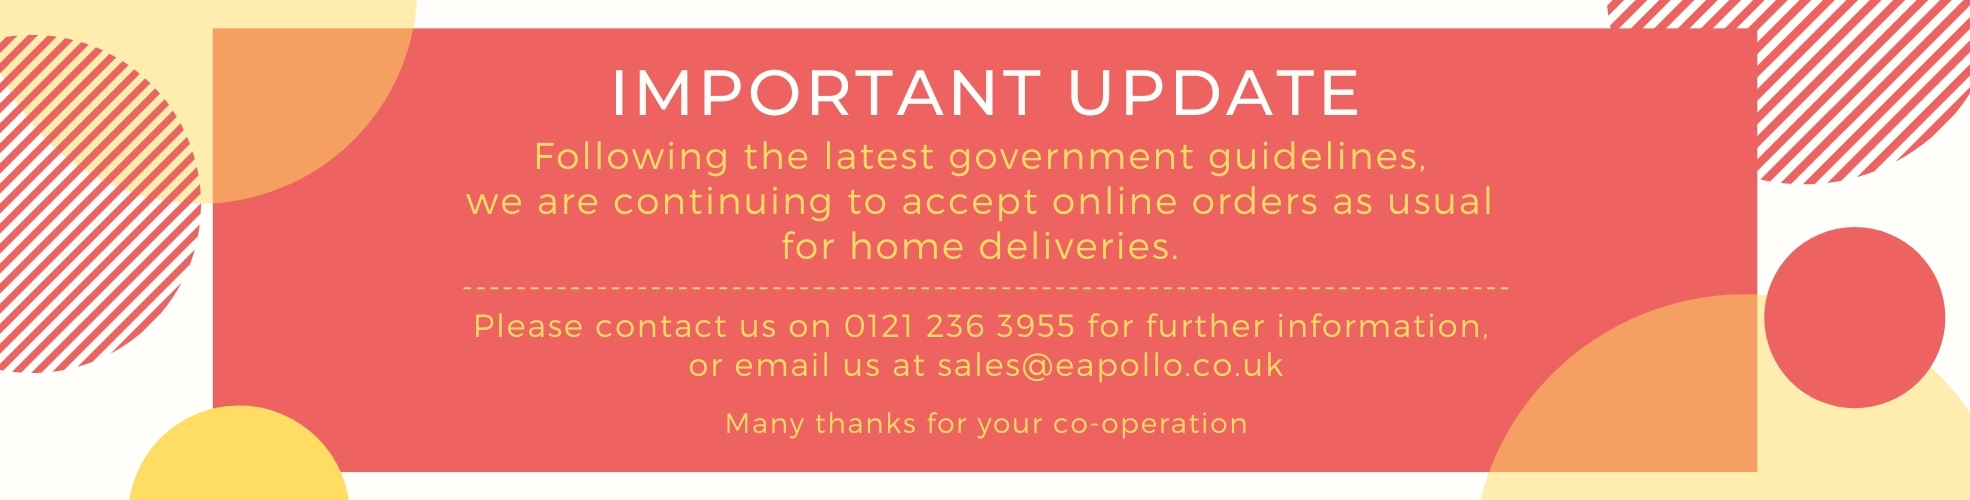 Important Update Following the latest government guidelines, we are continuing to accept online orders as usual for home deliveries. ------------------------------------------------------------------------------ Please contact us on 0121 236 3955 for further information, or email us at sales@eapollo.co.uk Many thanks for your co-operation